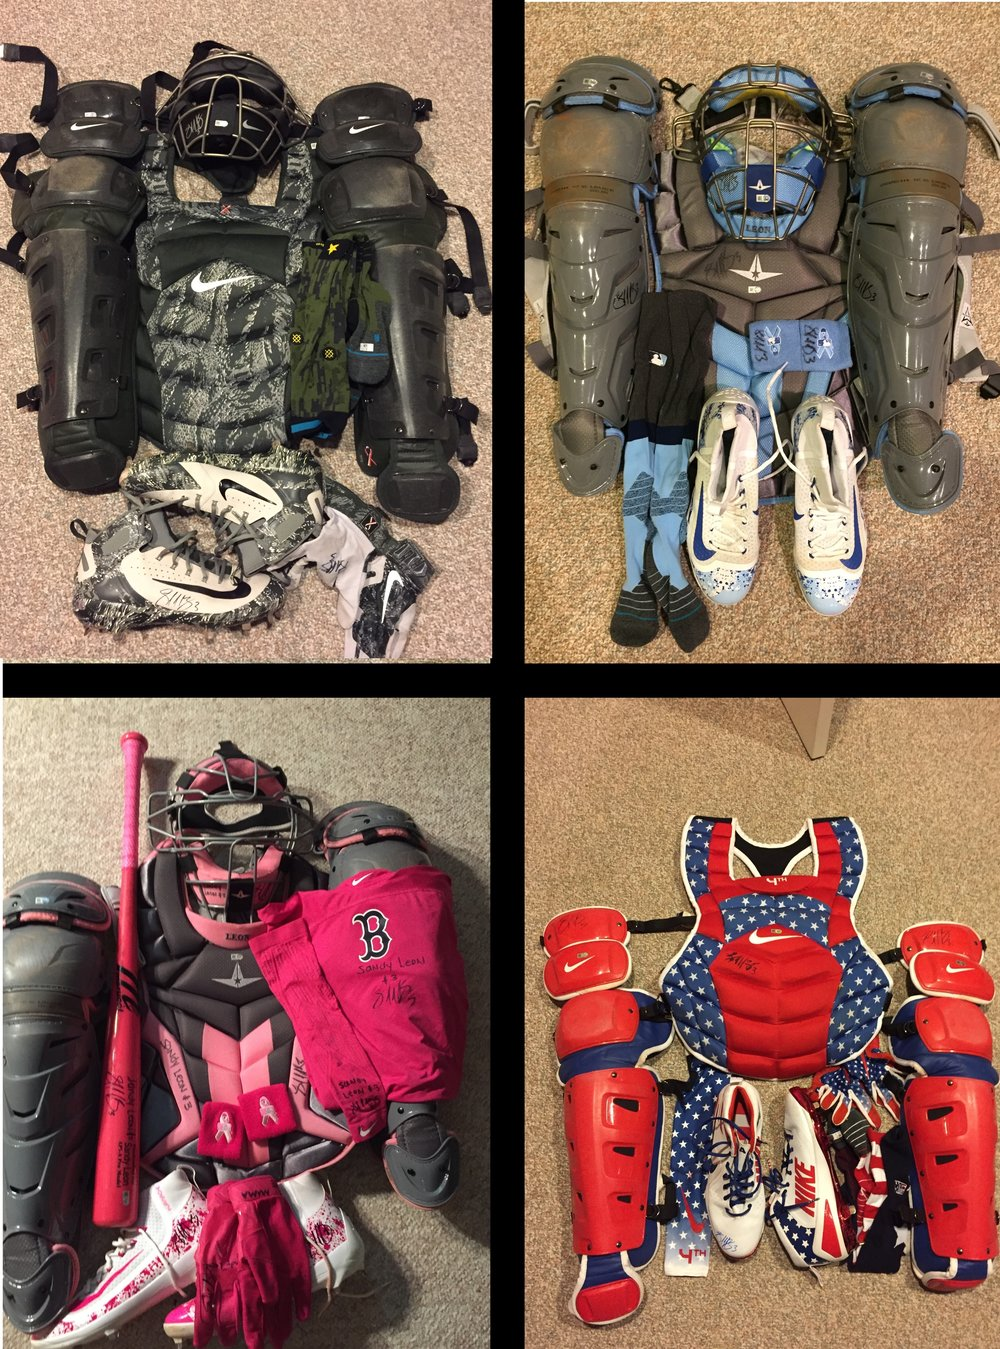 The Catcher's Gear Cycle